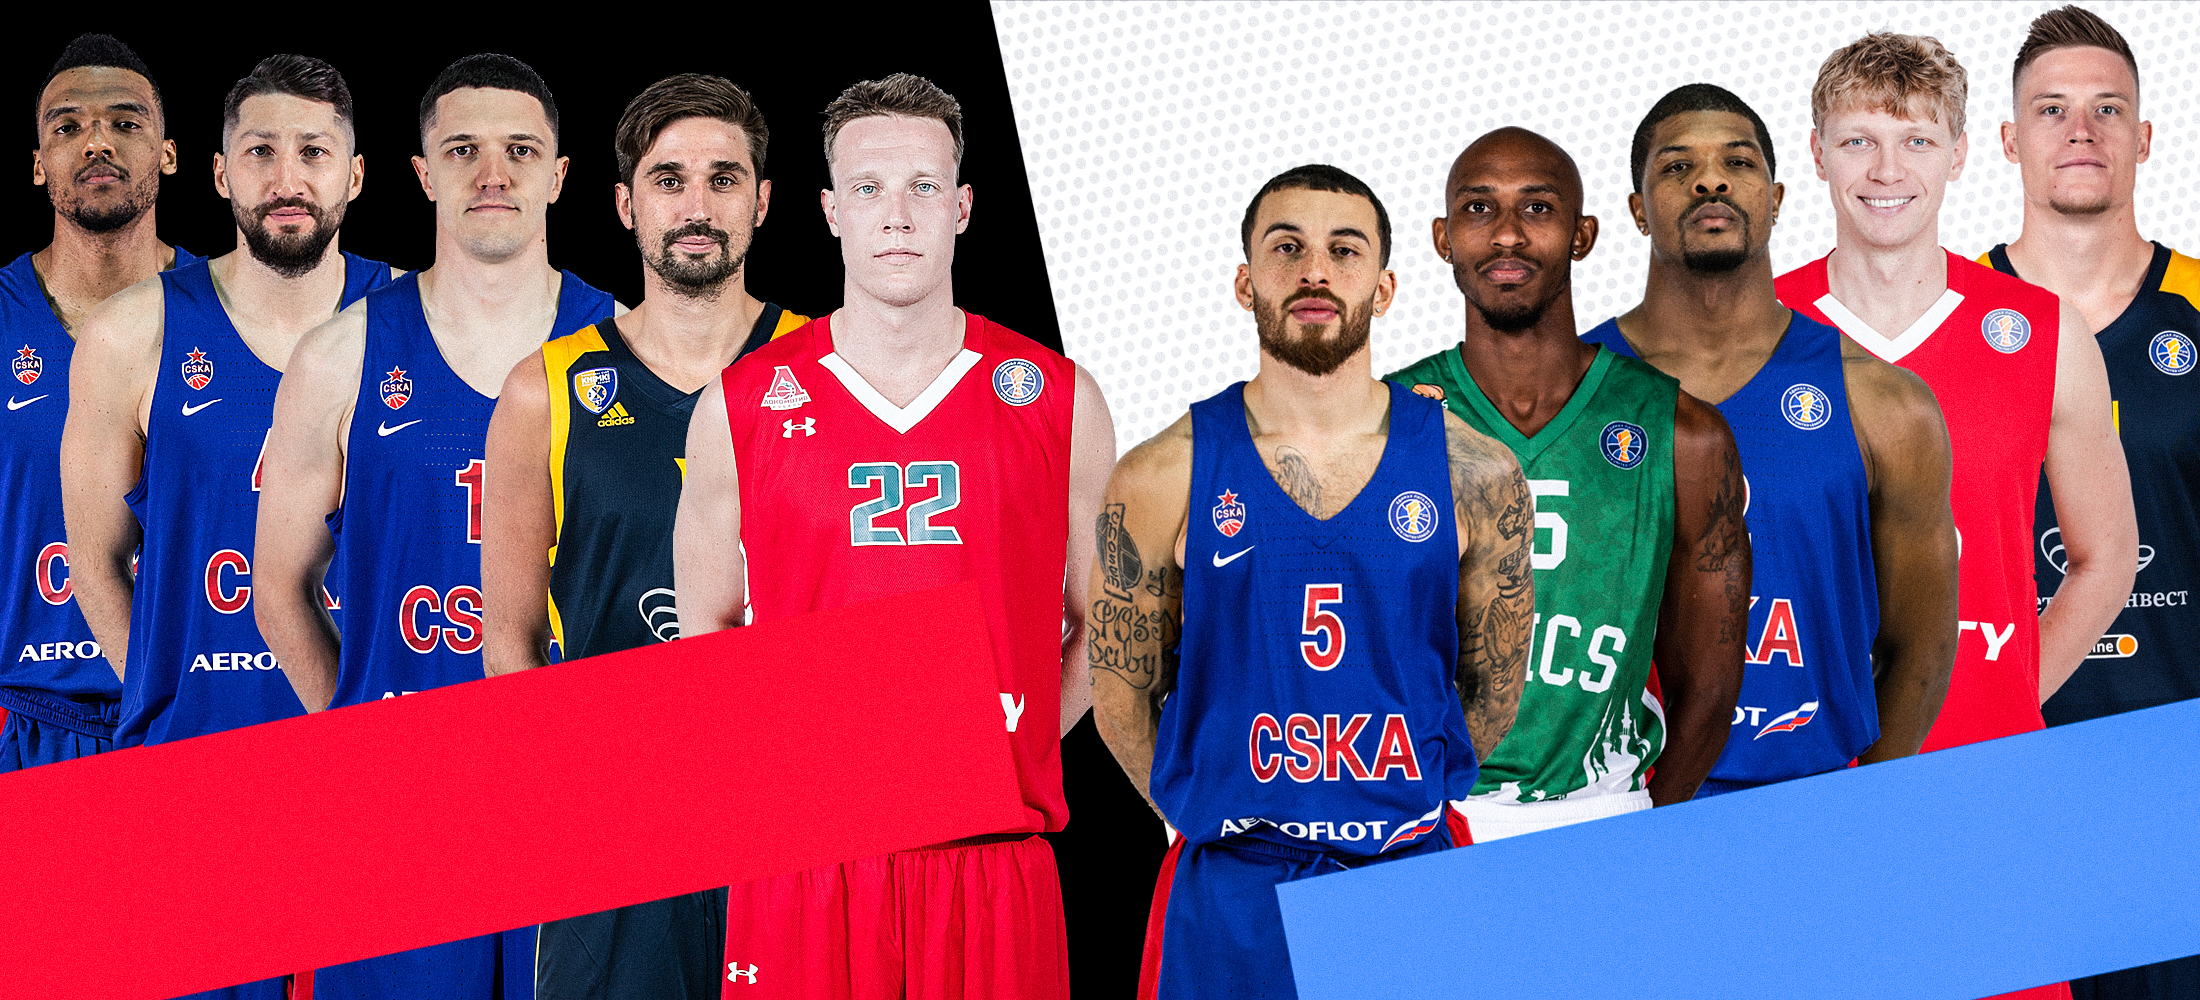 All-Star coaches select starting fives